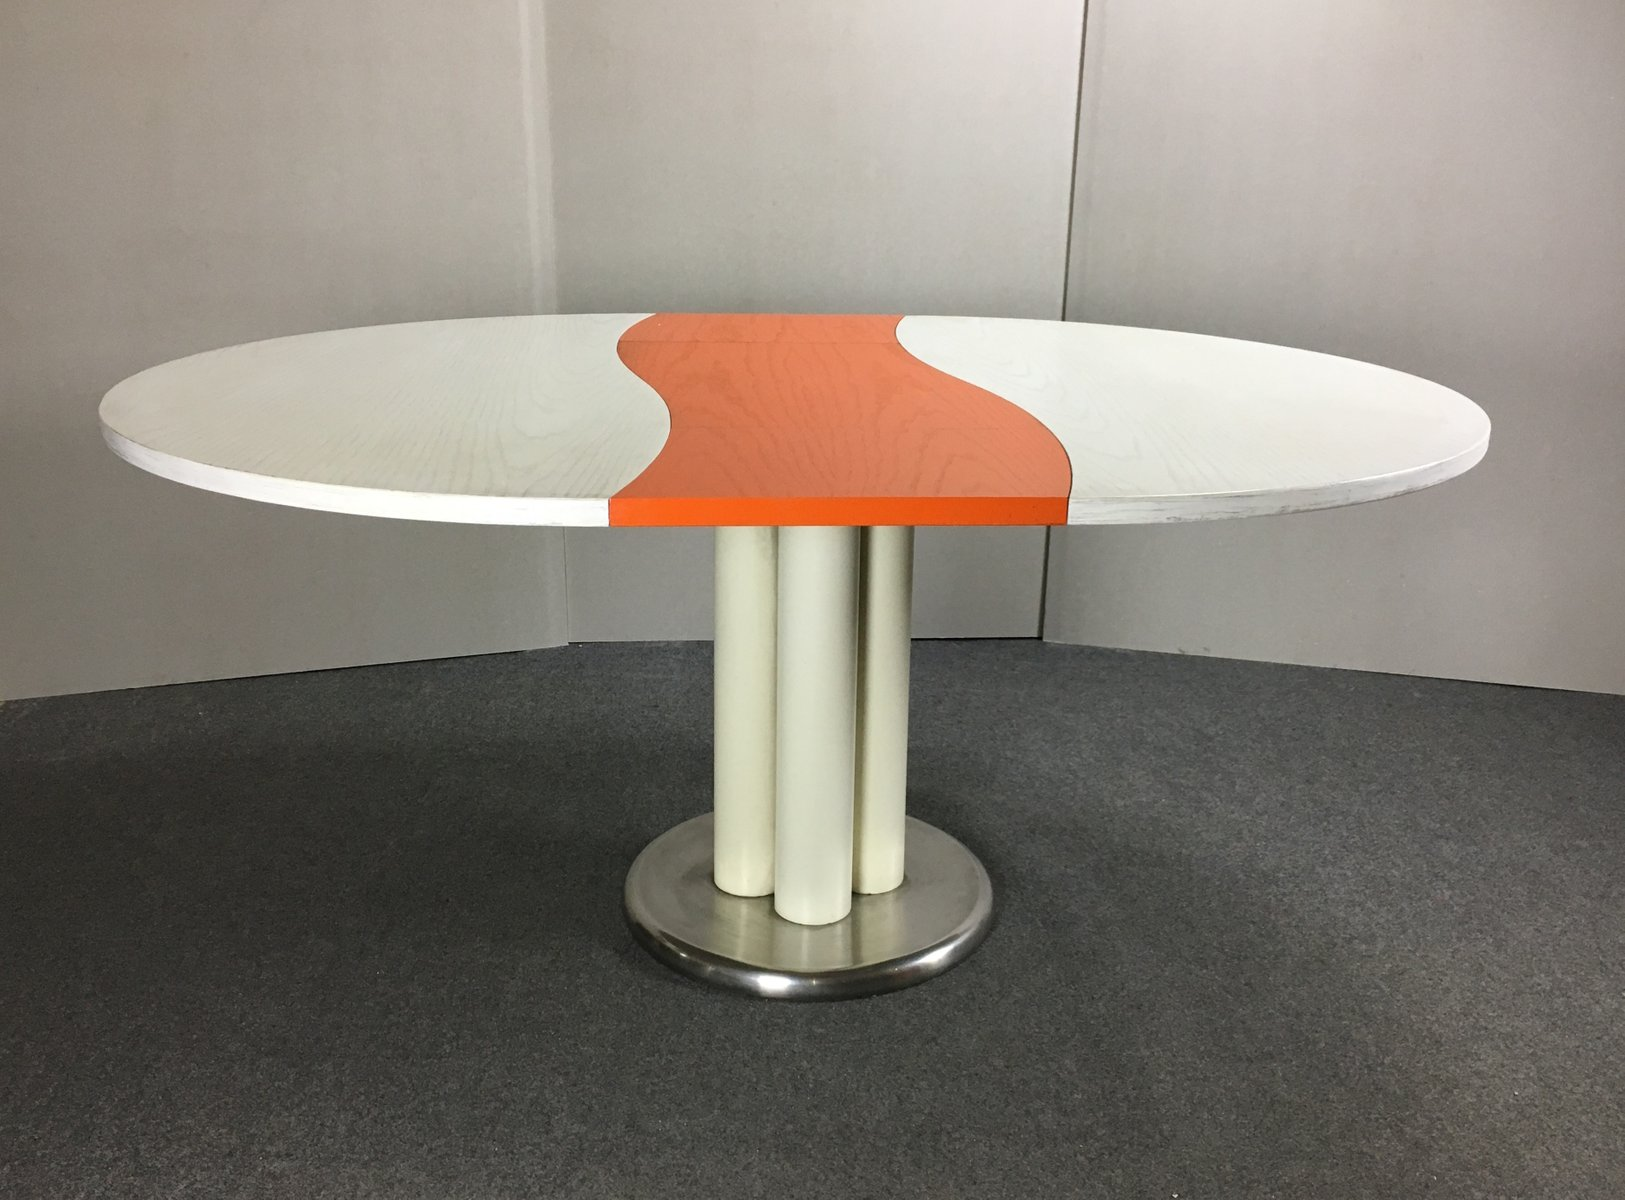 Extendable Dining Table By De Pas DUrbino And Lomazzi For Acerbis 1960s Sale At Pamono